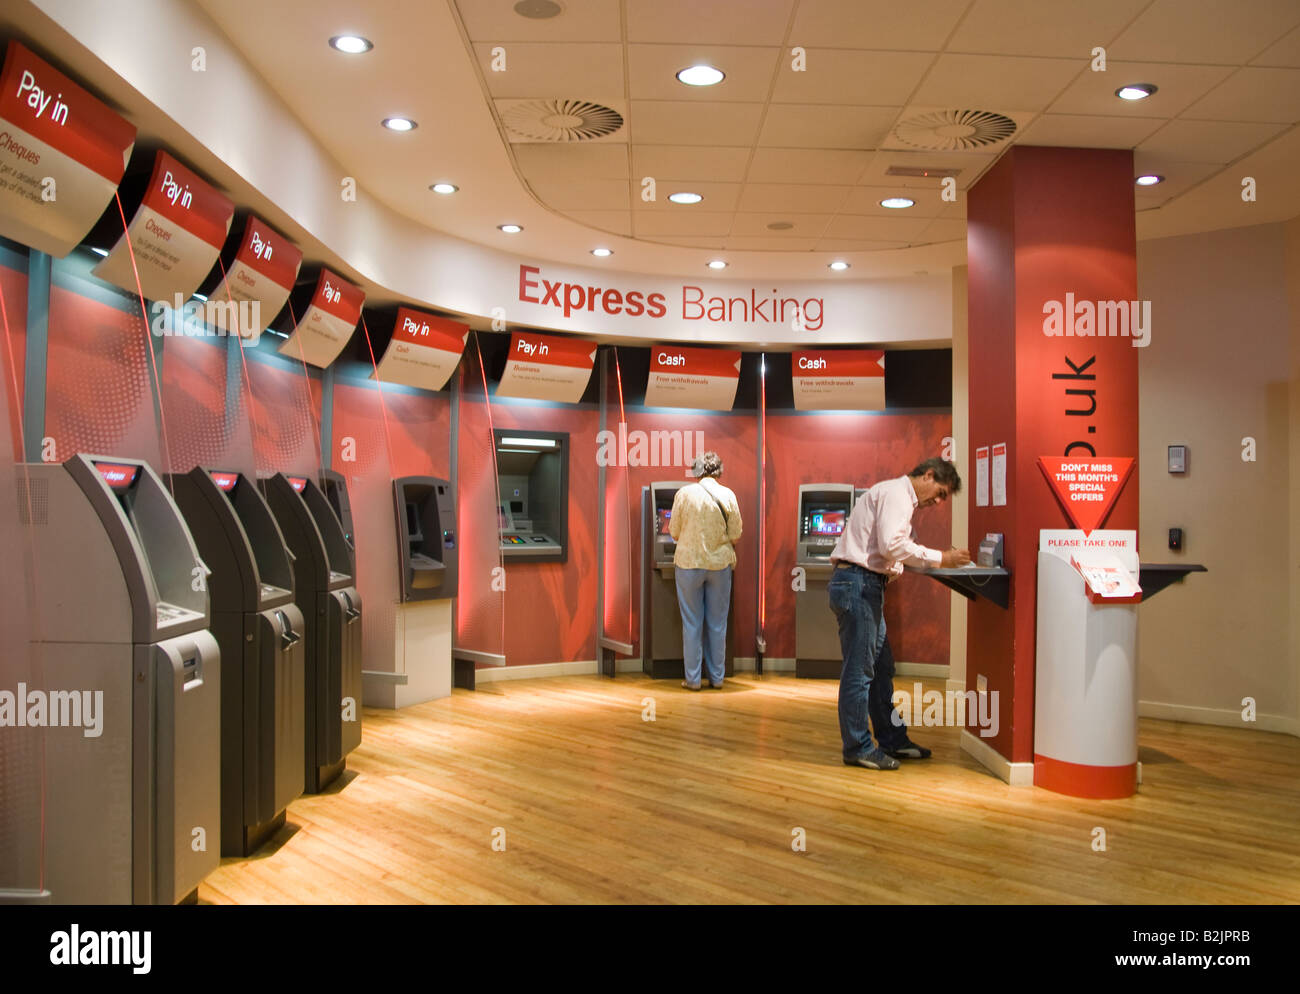 People using automated self service machines at a branch of HSBC bank - Stock Image